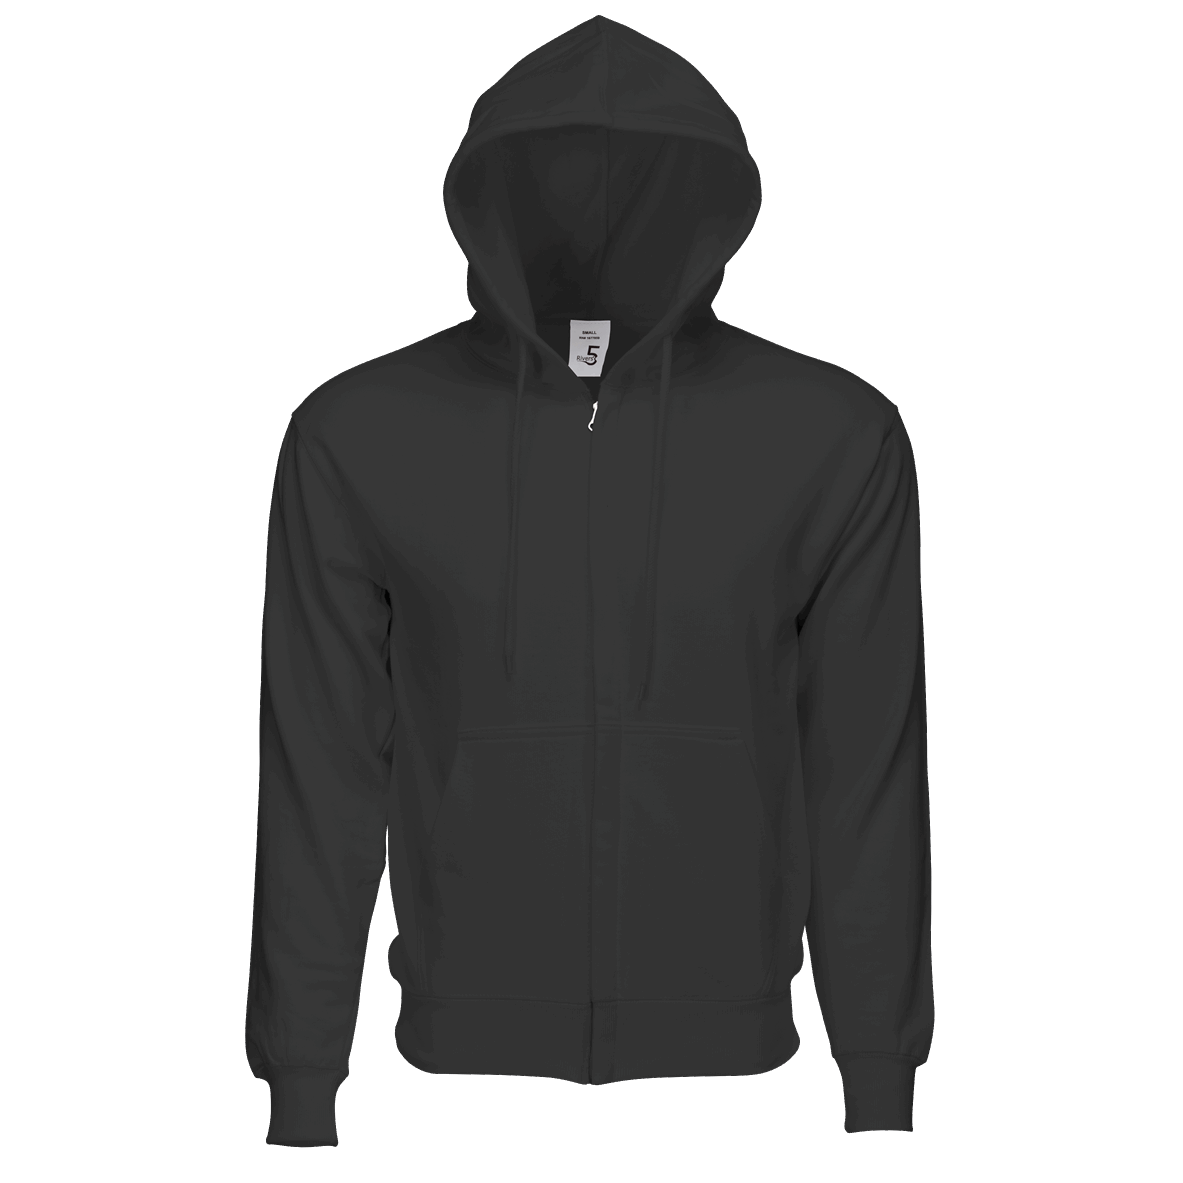 Fleece Zipper Charcoal